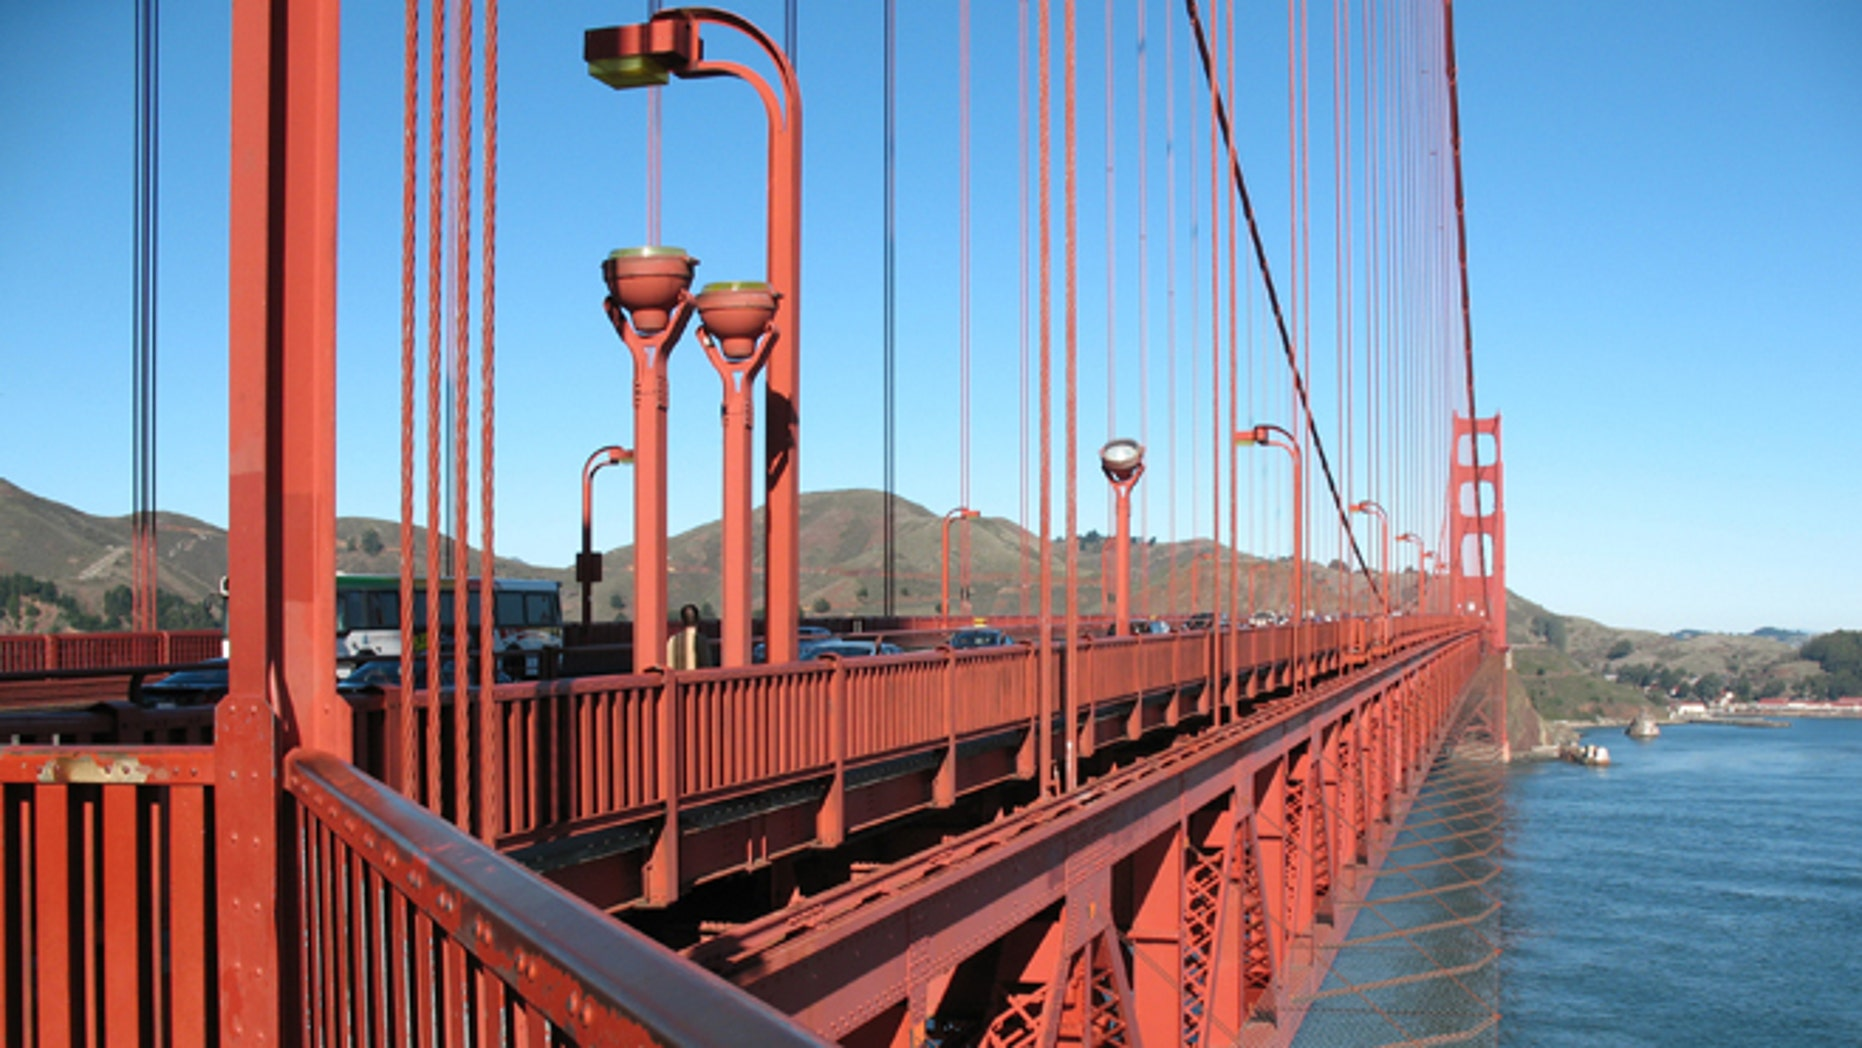 This undated artist rendering provided by the Golden Gate Bridge authorities shows the proposed netting suicide barrier that is to be installed under the iconic bridge in San Francisco.